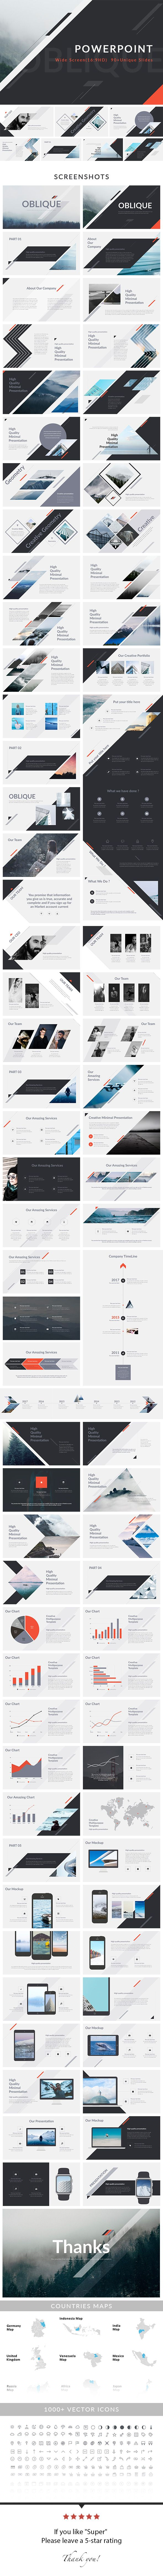 Oblique powerpoint presentation template abstract powerpoint design portfolio toneelgroepblik Choice Image